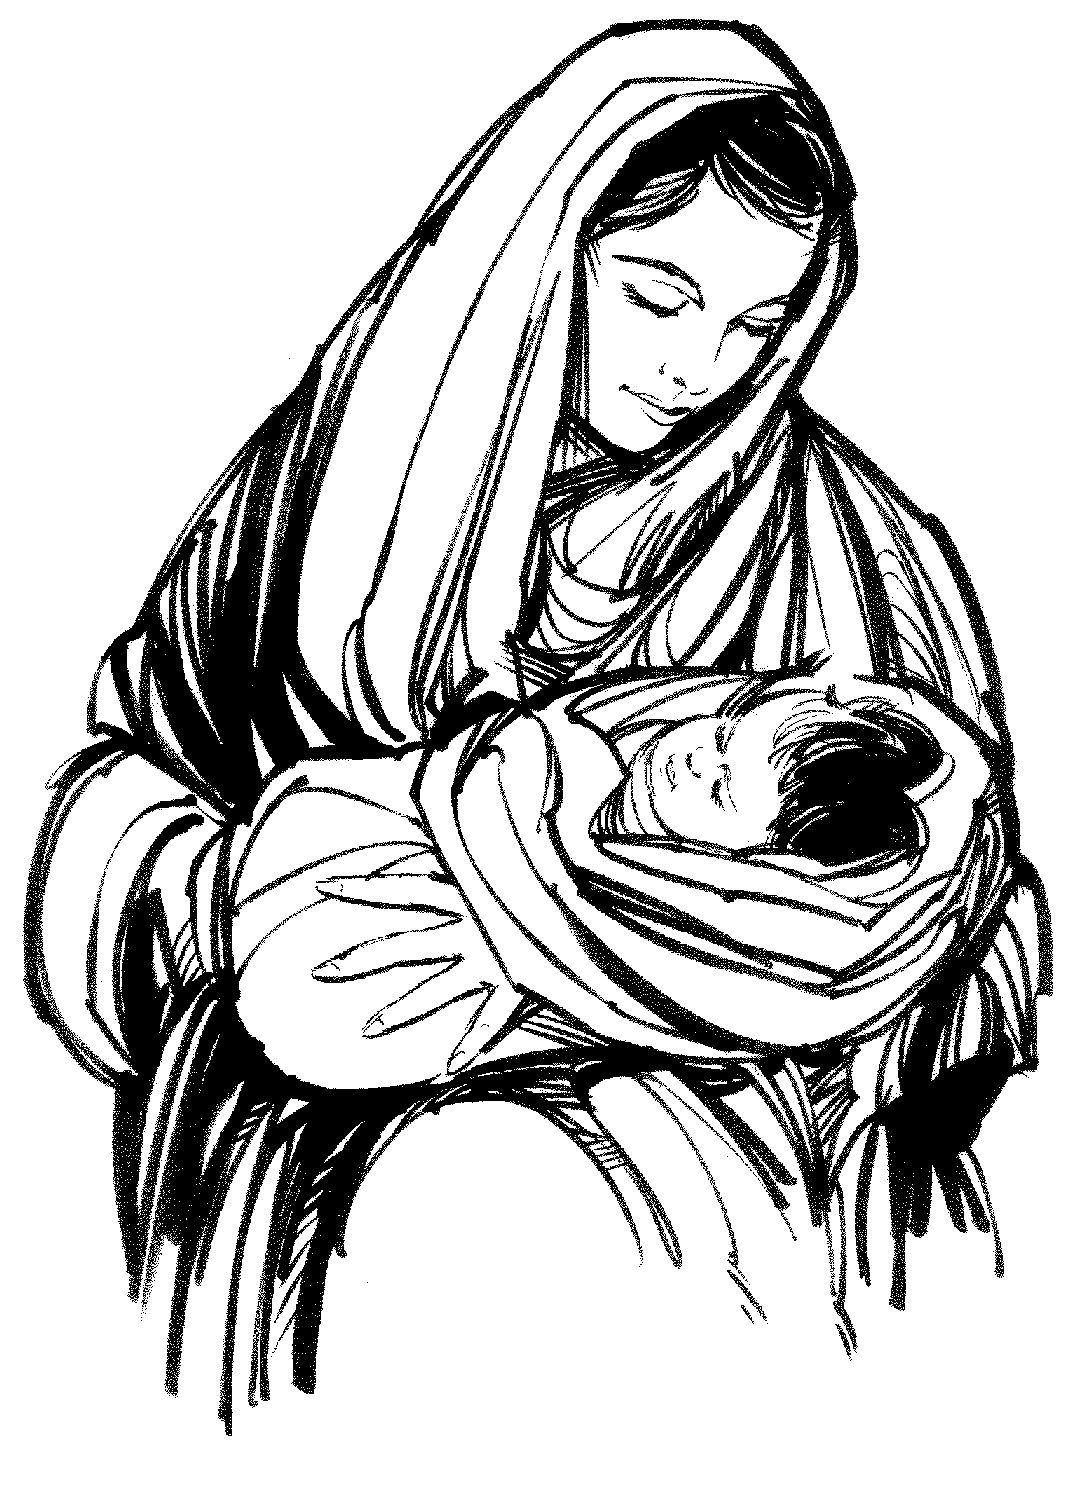 hight resolution of 1073x1500 virgin mary carrying baby jesus jesus clipart explore pictures